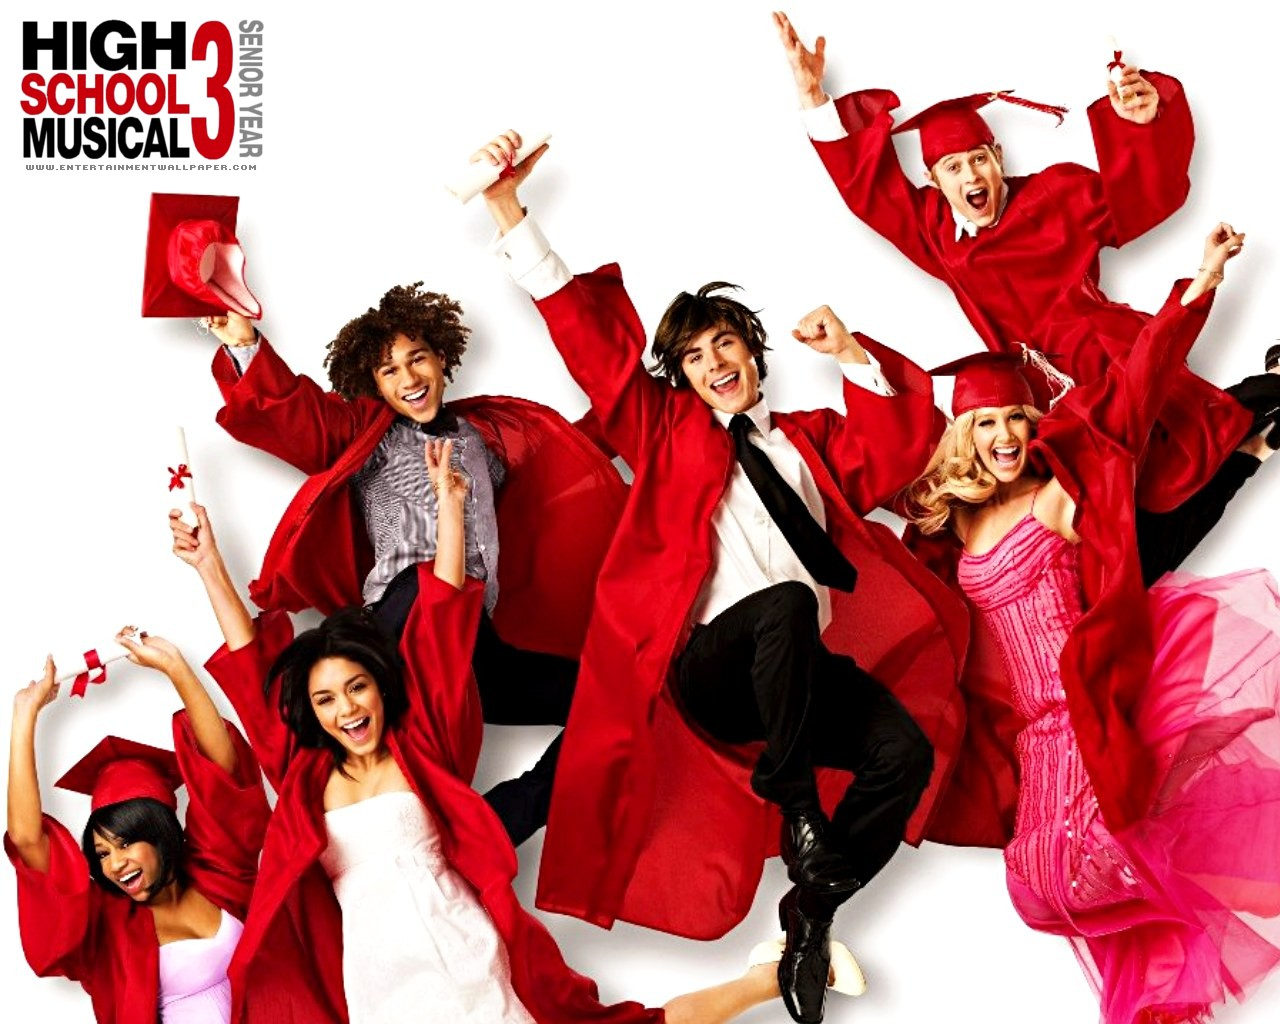 high school musical 3 wallpaper